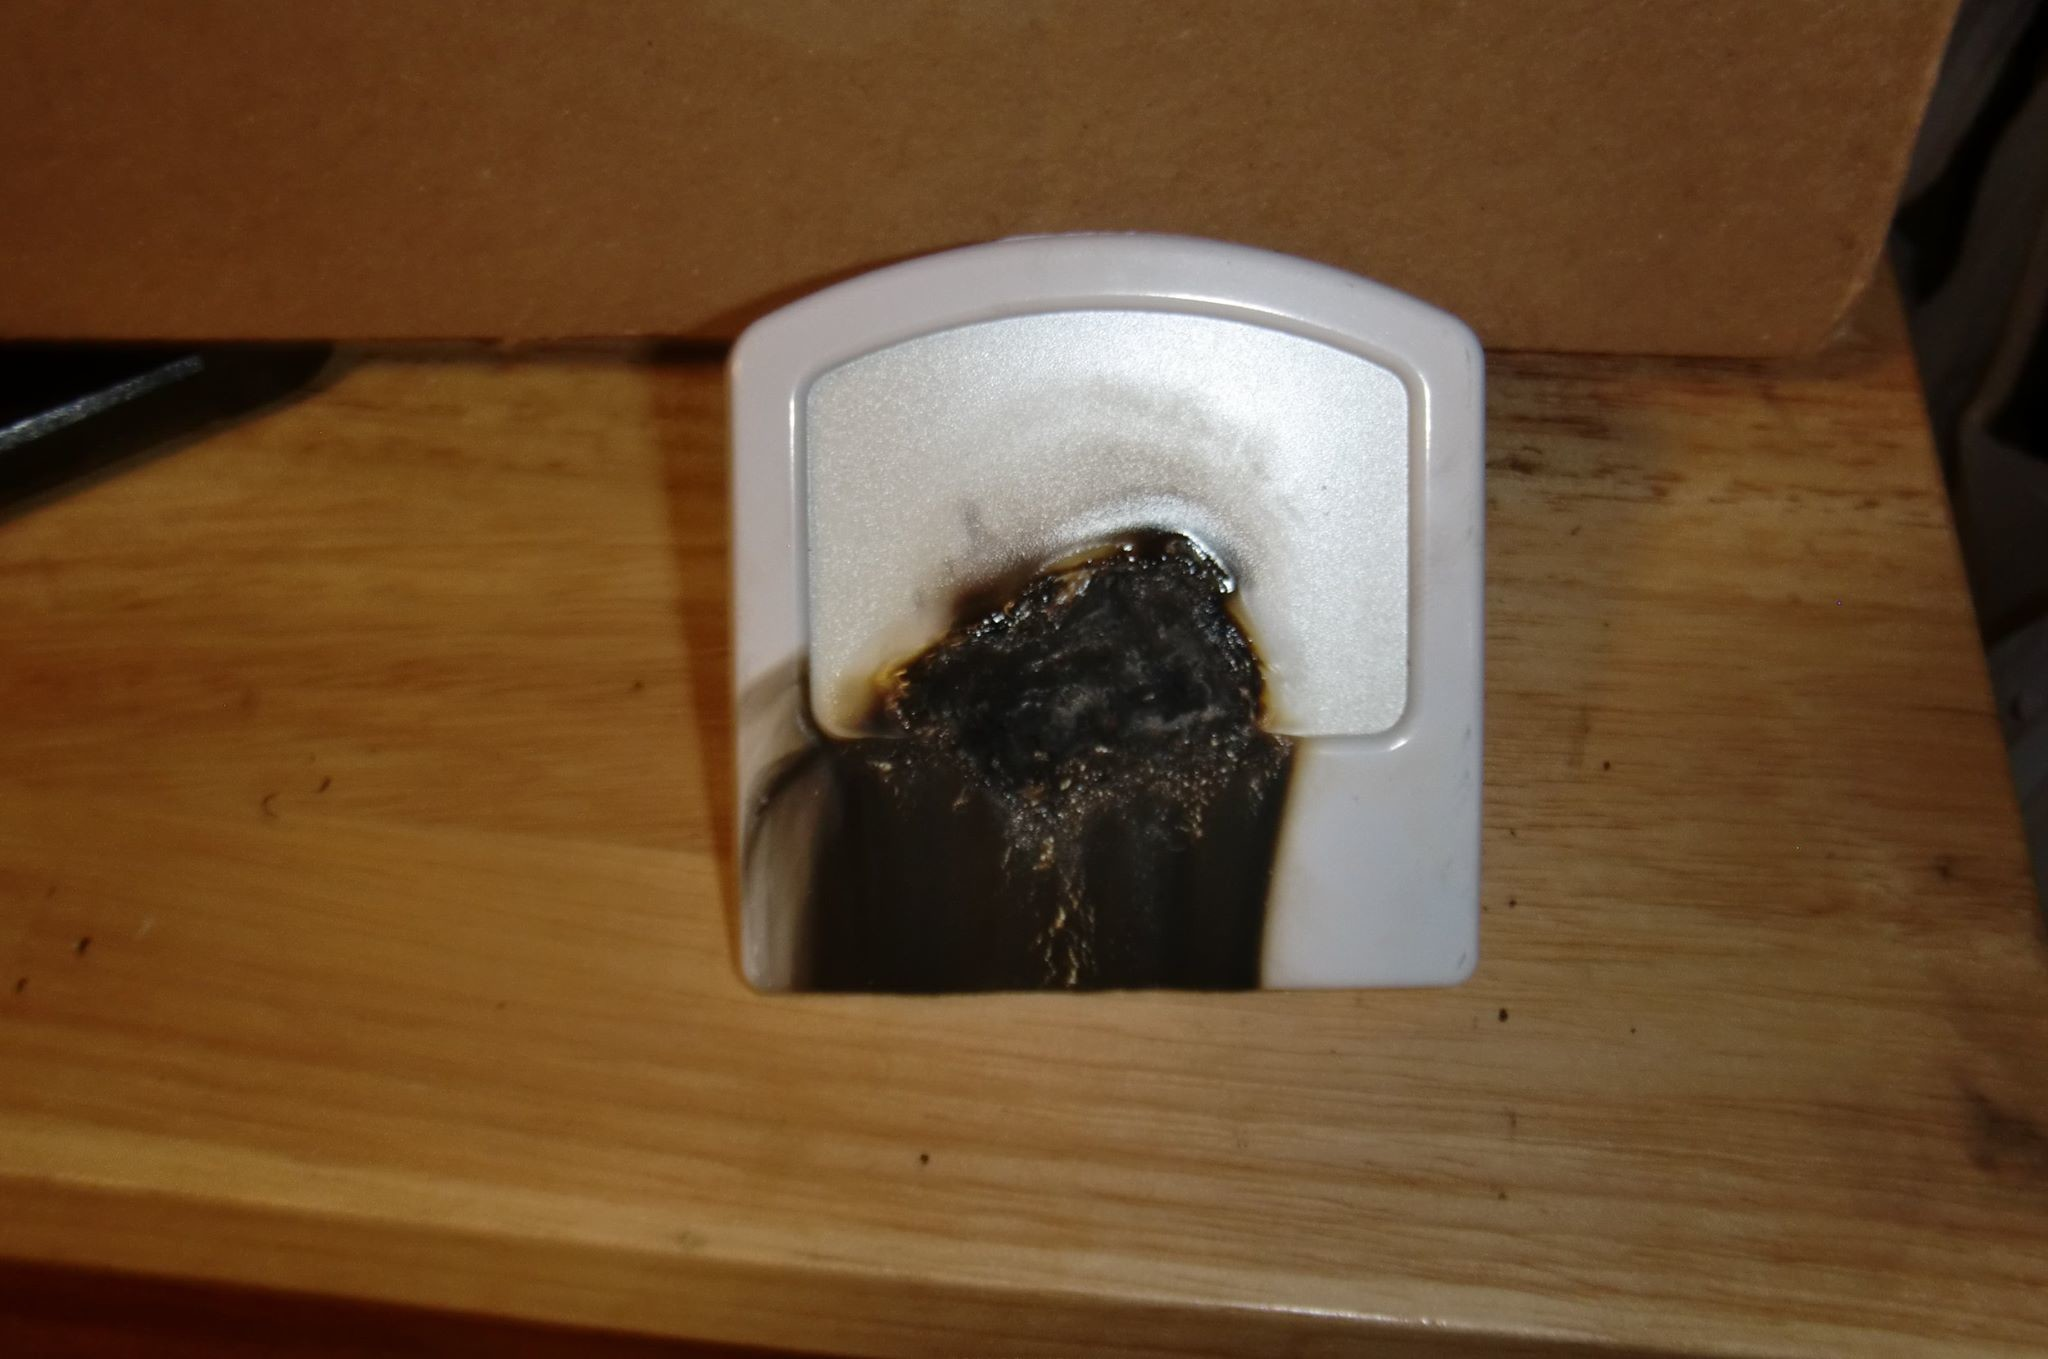 This nightlight is attributed to a fire in Upper Allen Township on March 31. These types of nighlights were given to Reid Elementary School students last fall.